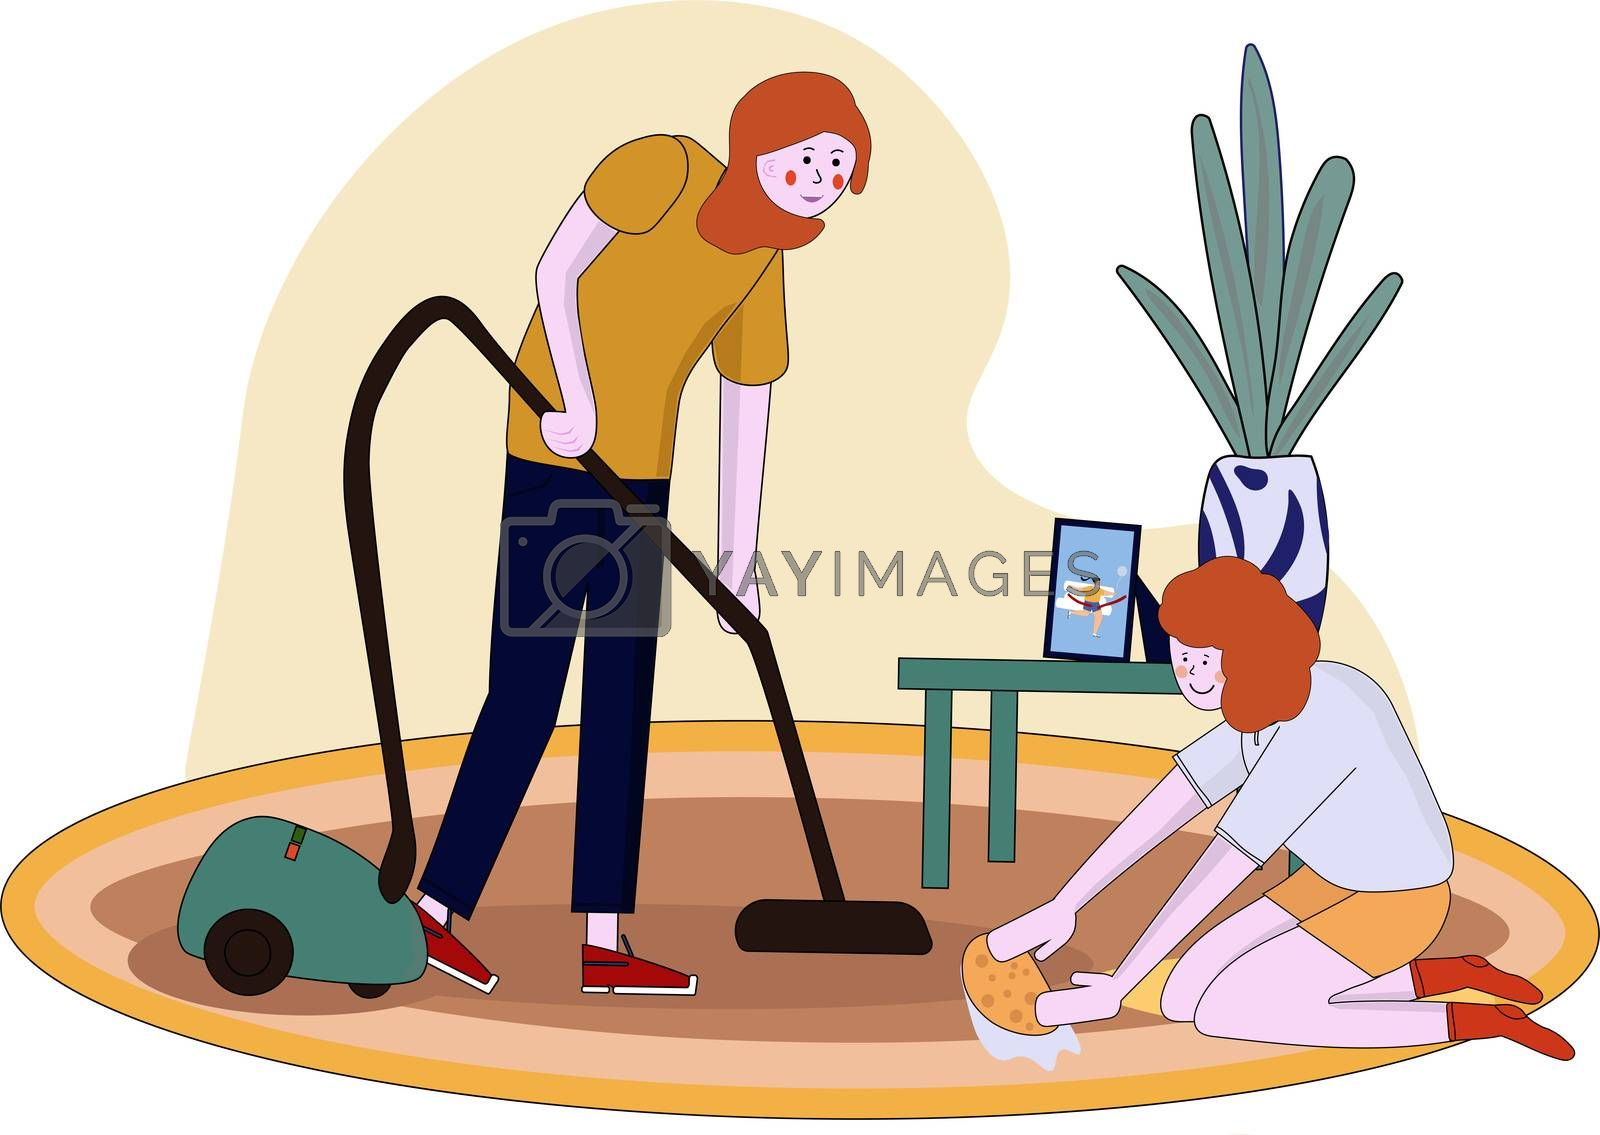 Mother and little daughter Cartoon housework. A young woman and a girl are washing the floor. The woman vacuums. cleaning the house and dusting together